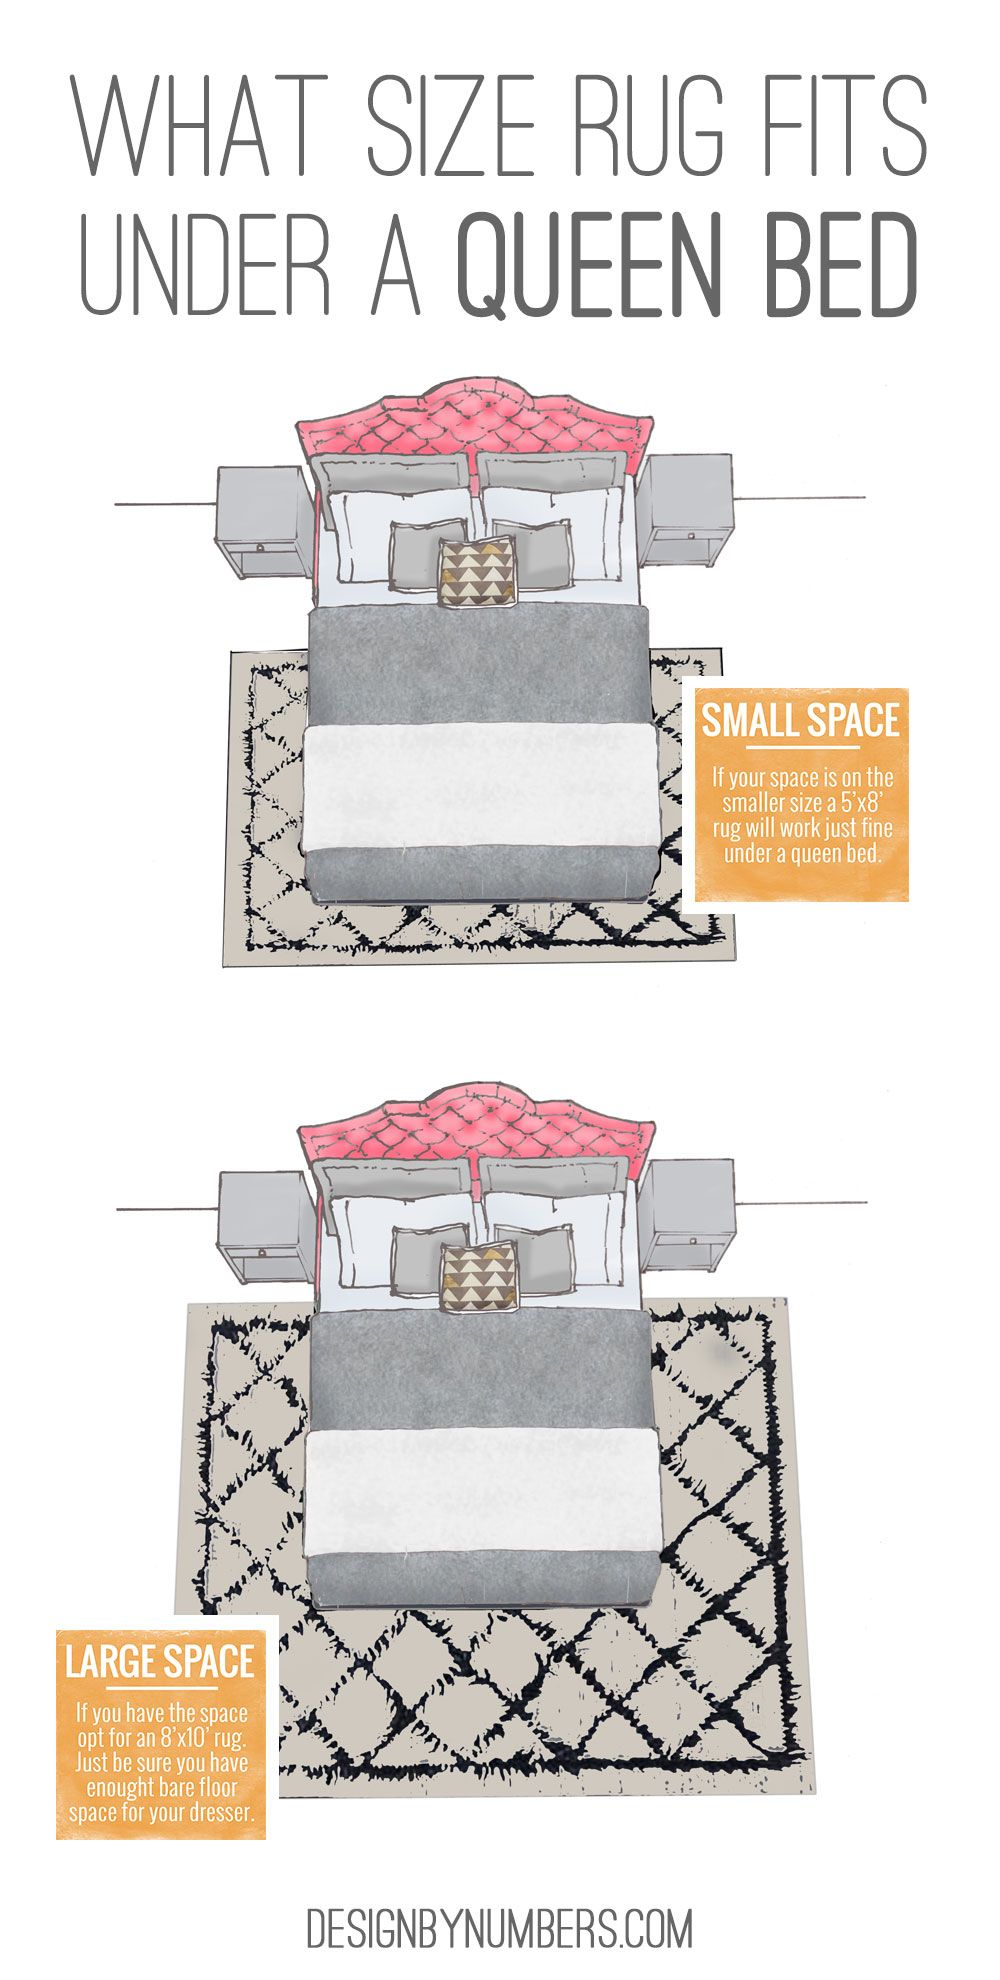 What Rug Size Fits Under A Queen Bed Rugtips Interiordesigntip